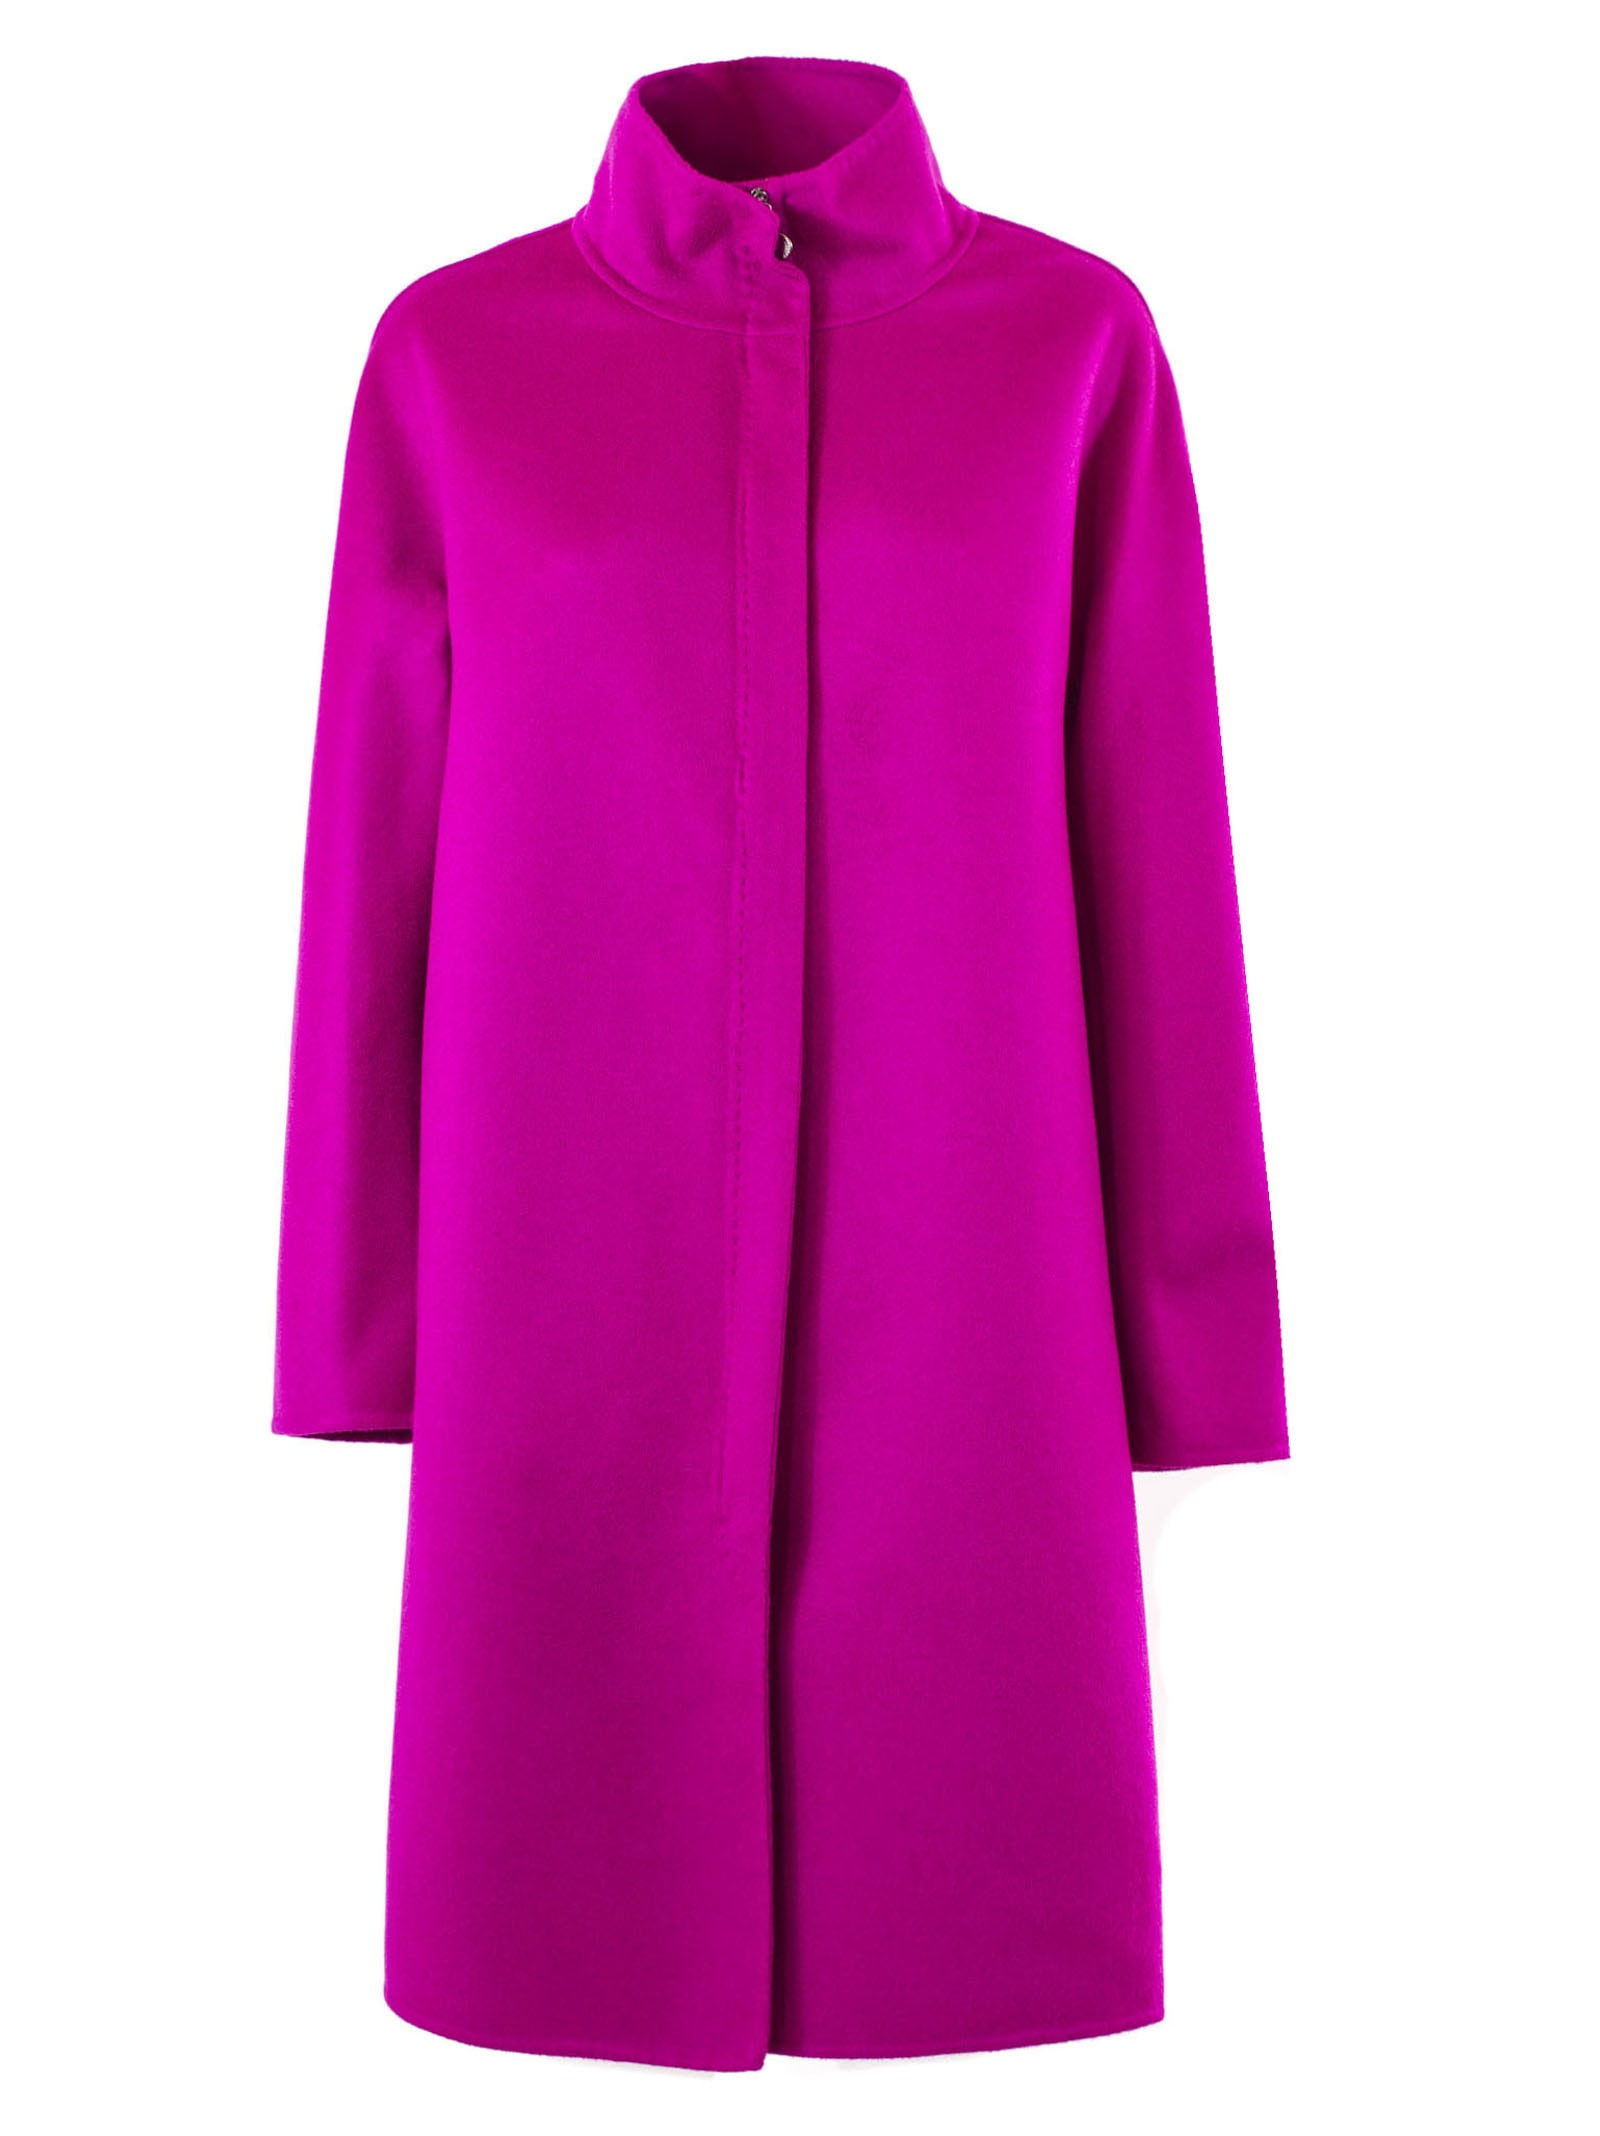 Fabiana Filippi Wool And Cashmere Fuchsia Coat